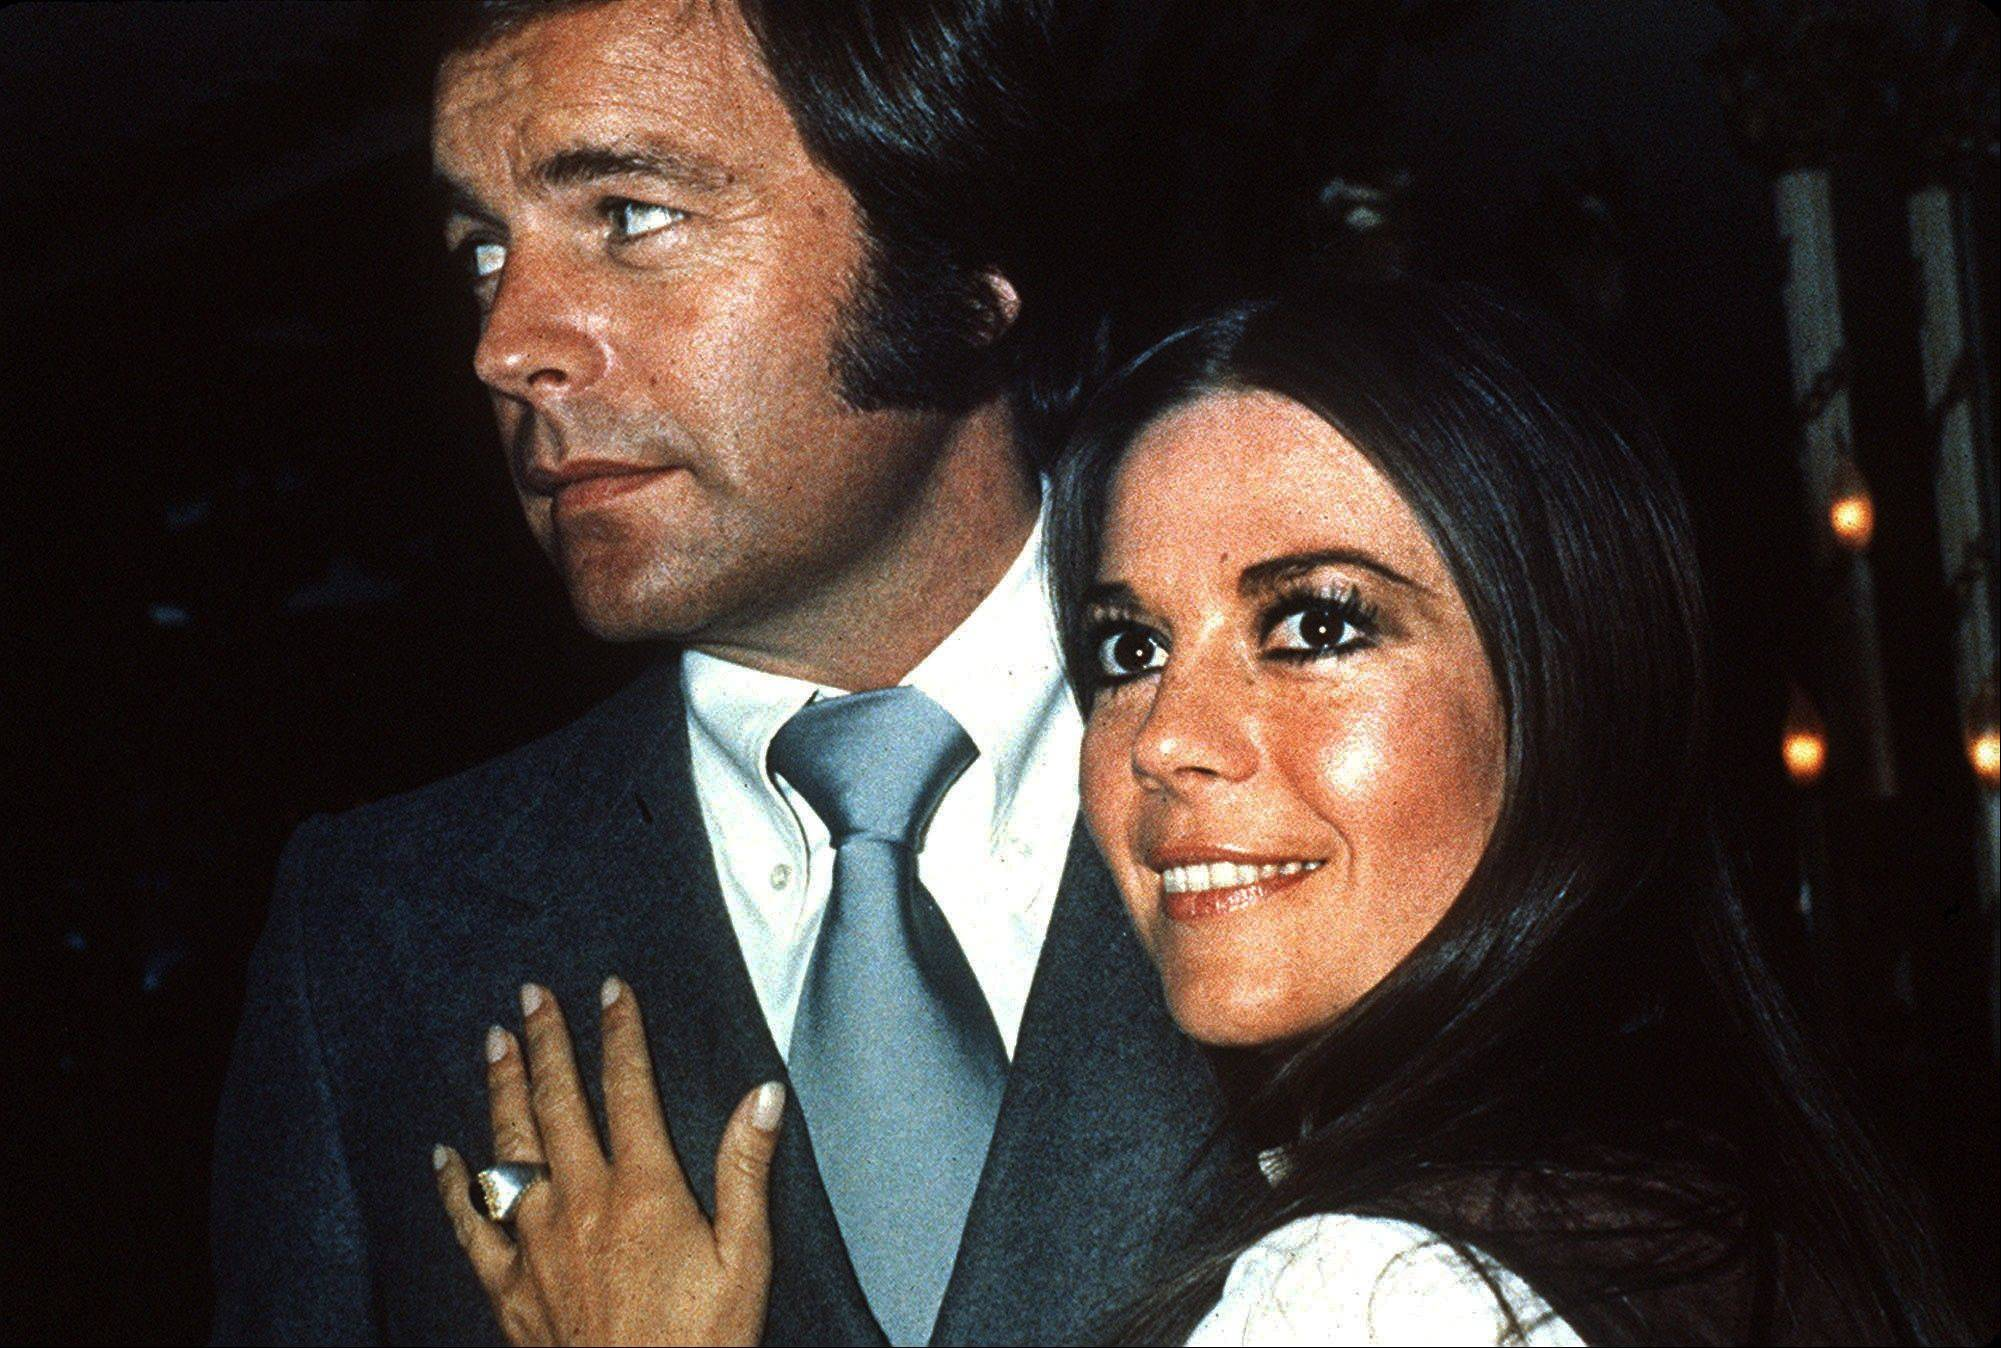 In this 1980 file photo, actor Robert Wagner appears with actress Natalie Wood. Los Angeles sheriff's homicide detectives are taking another look at Wood's 1981 drowning death based on new information, officials announced Thursday, Nov. 17, 2011. A yacht captain said on national TV Friday, Nov. 18, 2011, that he lied to investigators about Natalie Wood's mysterious death 30 years ago and blames the actress' husband at the time, Wagner, for her drowning in the ocean off Southern California.